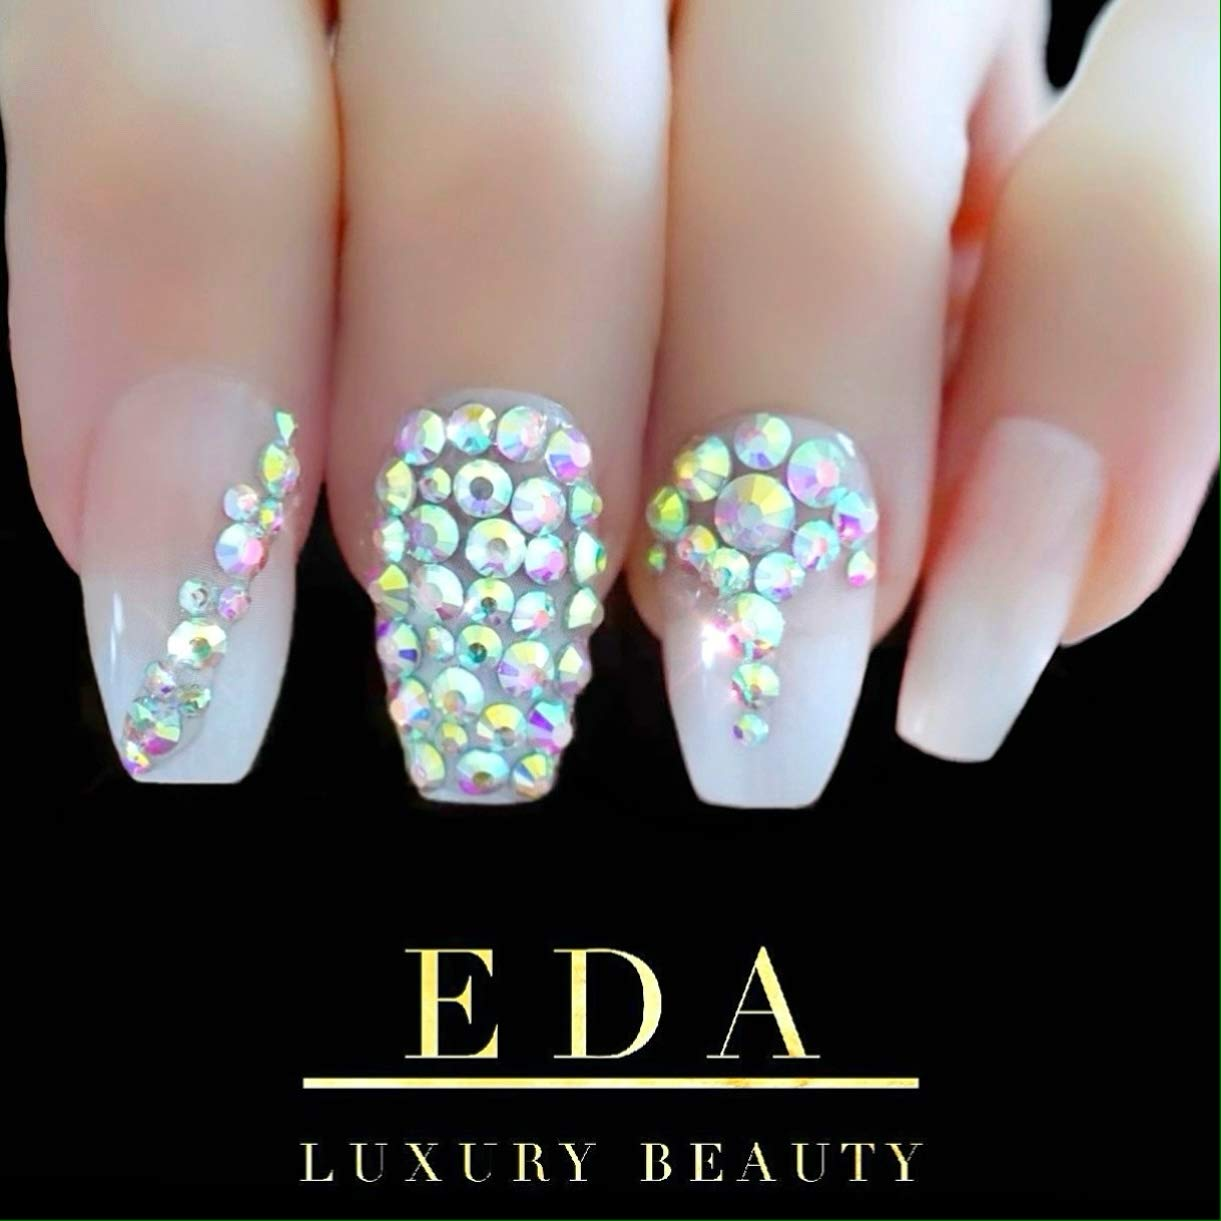 Amazon Com Eda Luxury Beauty Natural Nude Pink Ombre White French 3d Glamorous Jewel Design Gel Glitter Full Cover Press On Artificial Tips False Nails Extra Long Ballerina Coffin Square Super Fashion